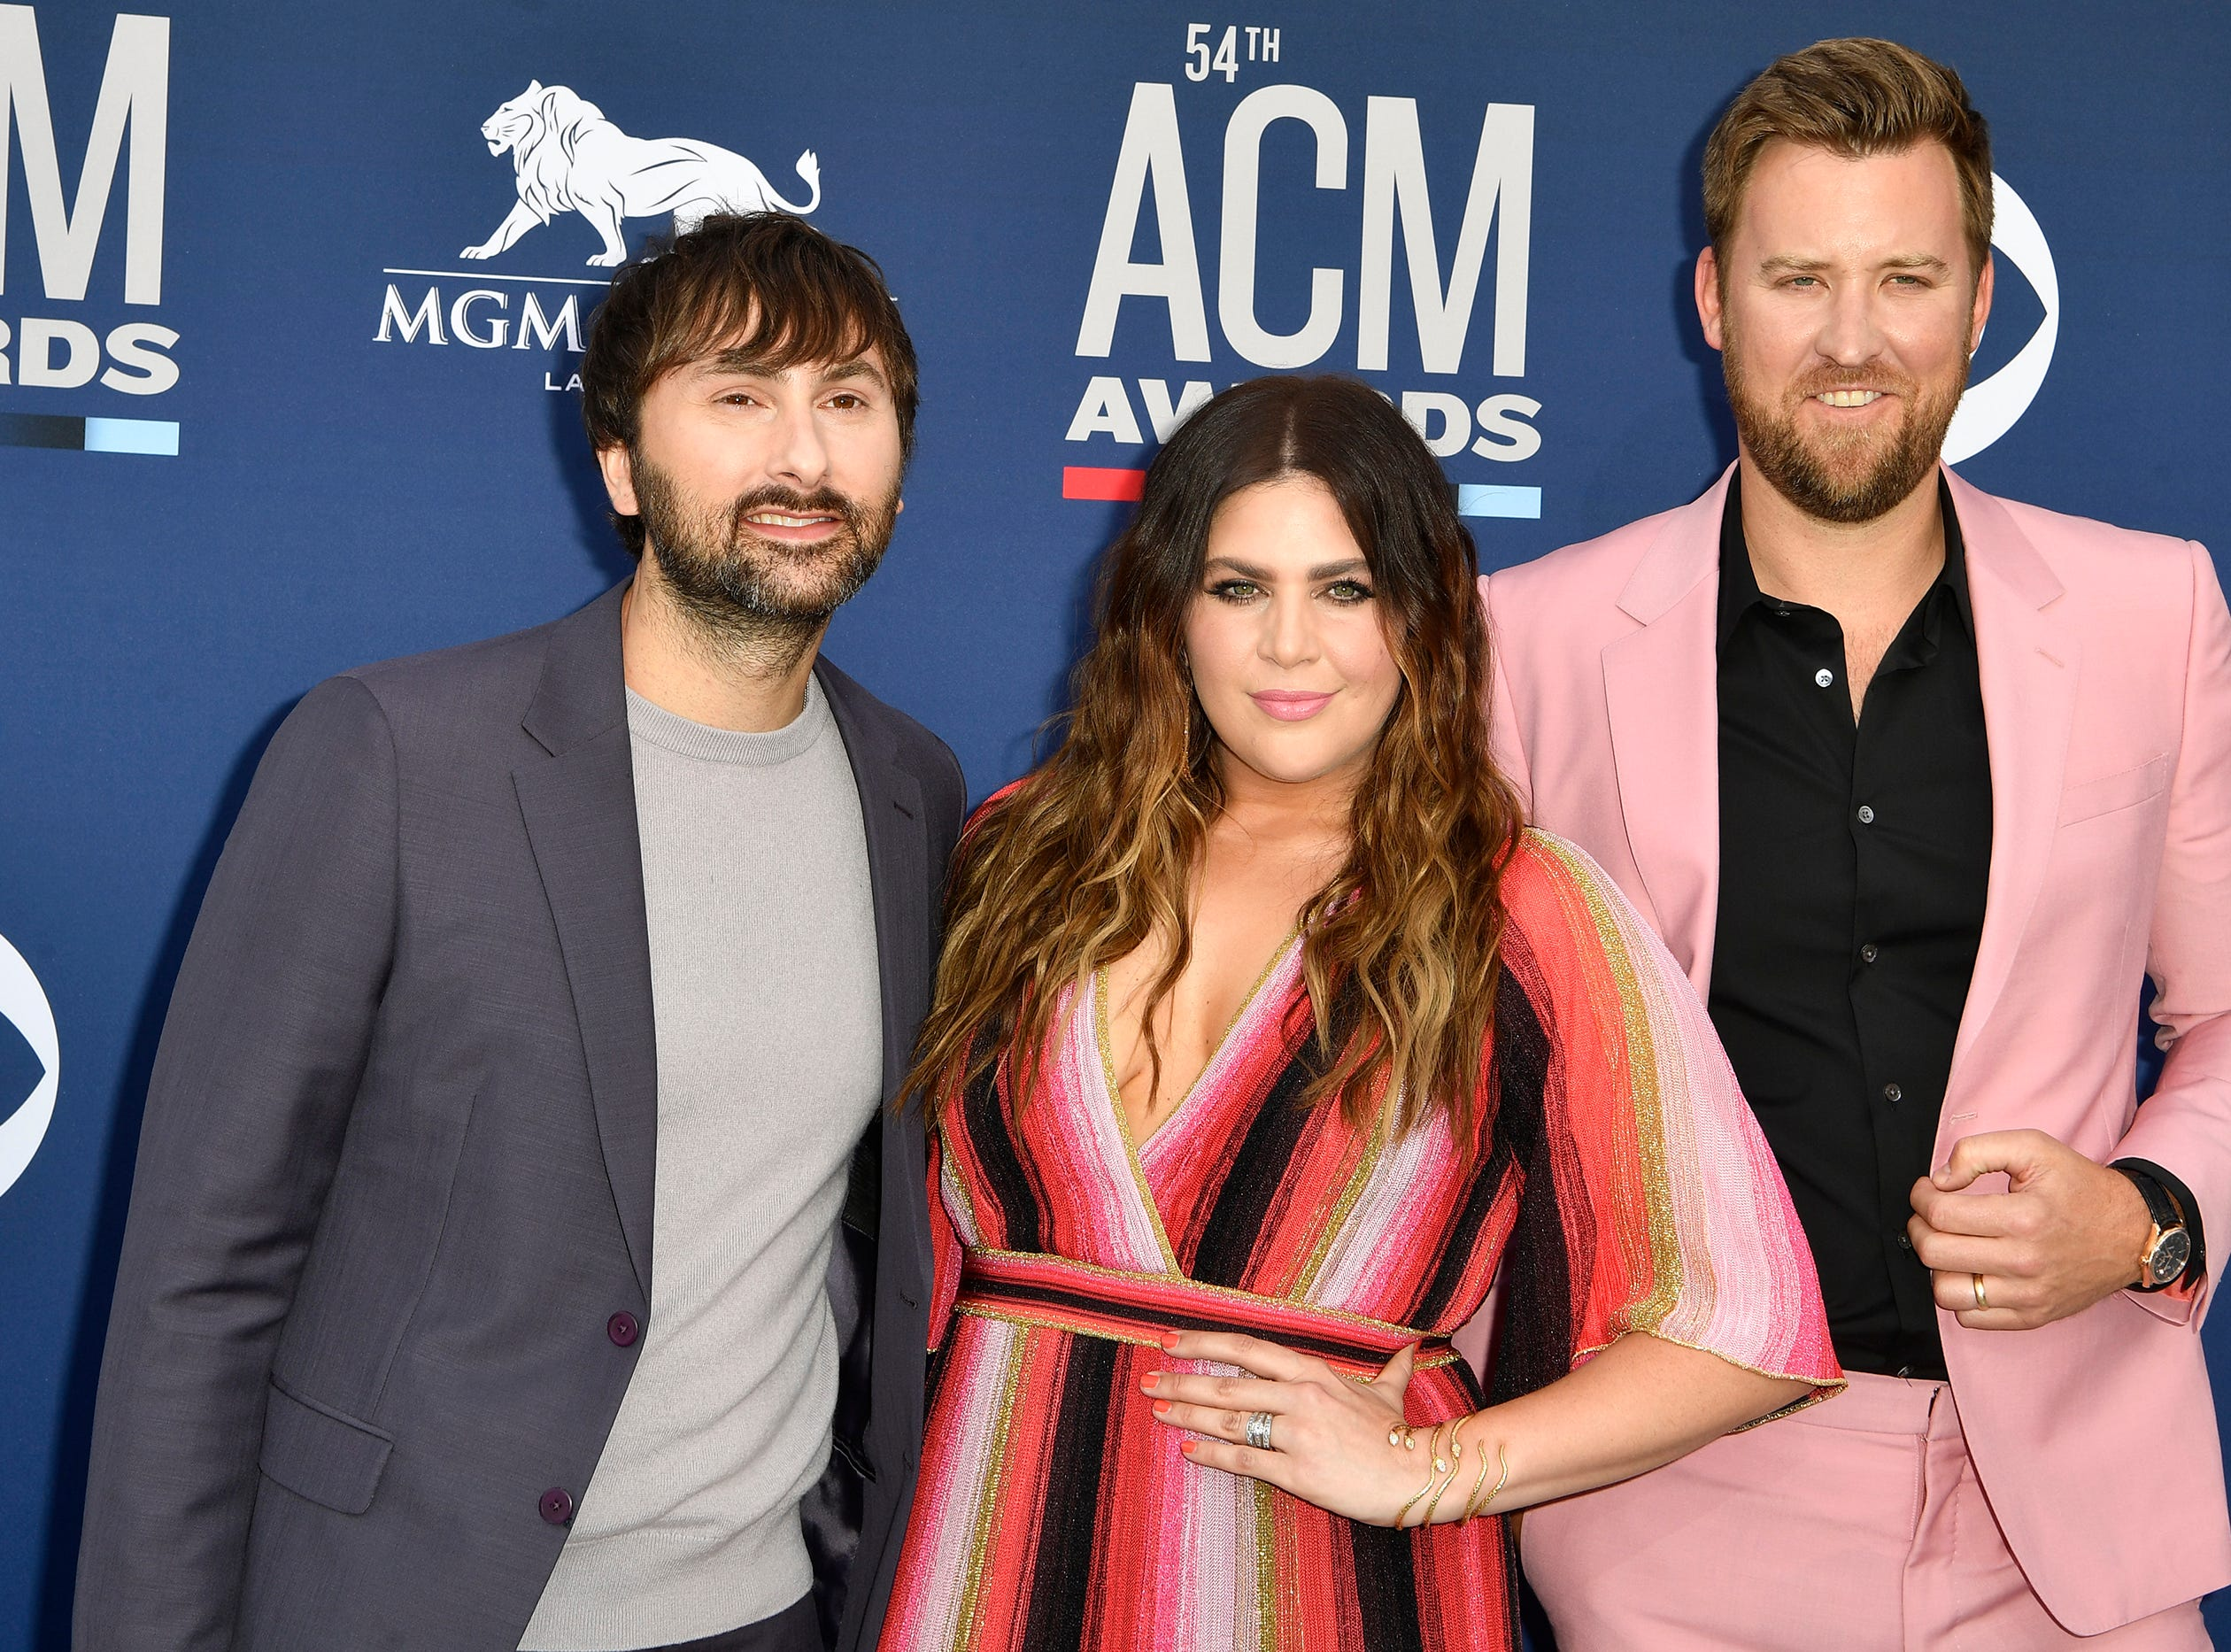 Dave Haywood, from left, Hillary Scott, and Charles Kelley of Lady Antebellum, walk the red carpet at the 54TH Academy of Country Music Awards Sunday, April 7, 2019, in Las Vegas, Nev.